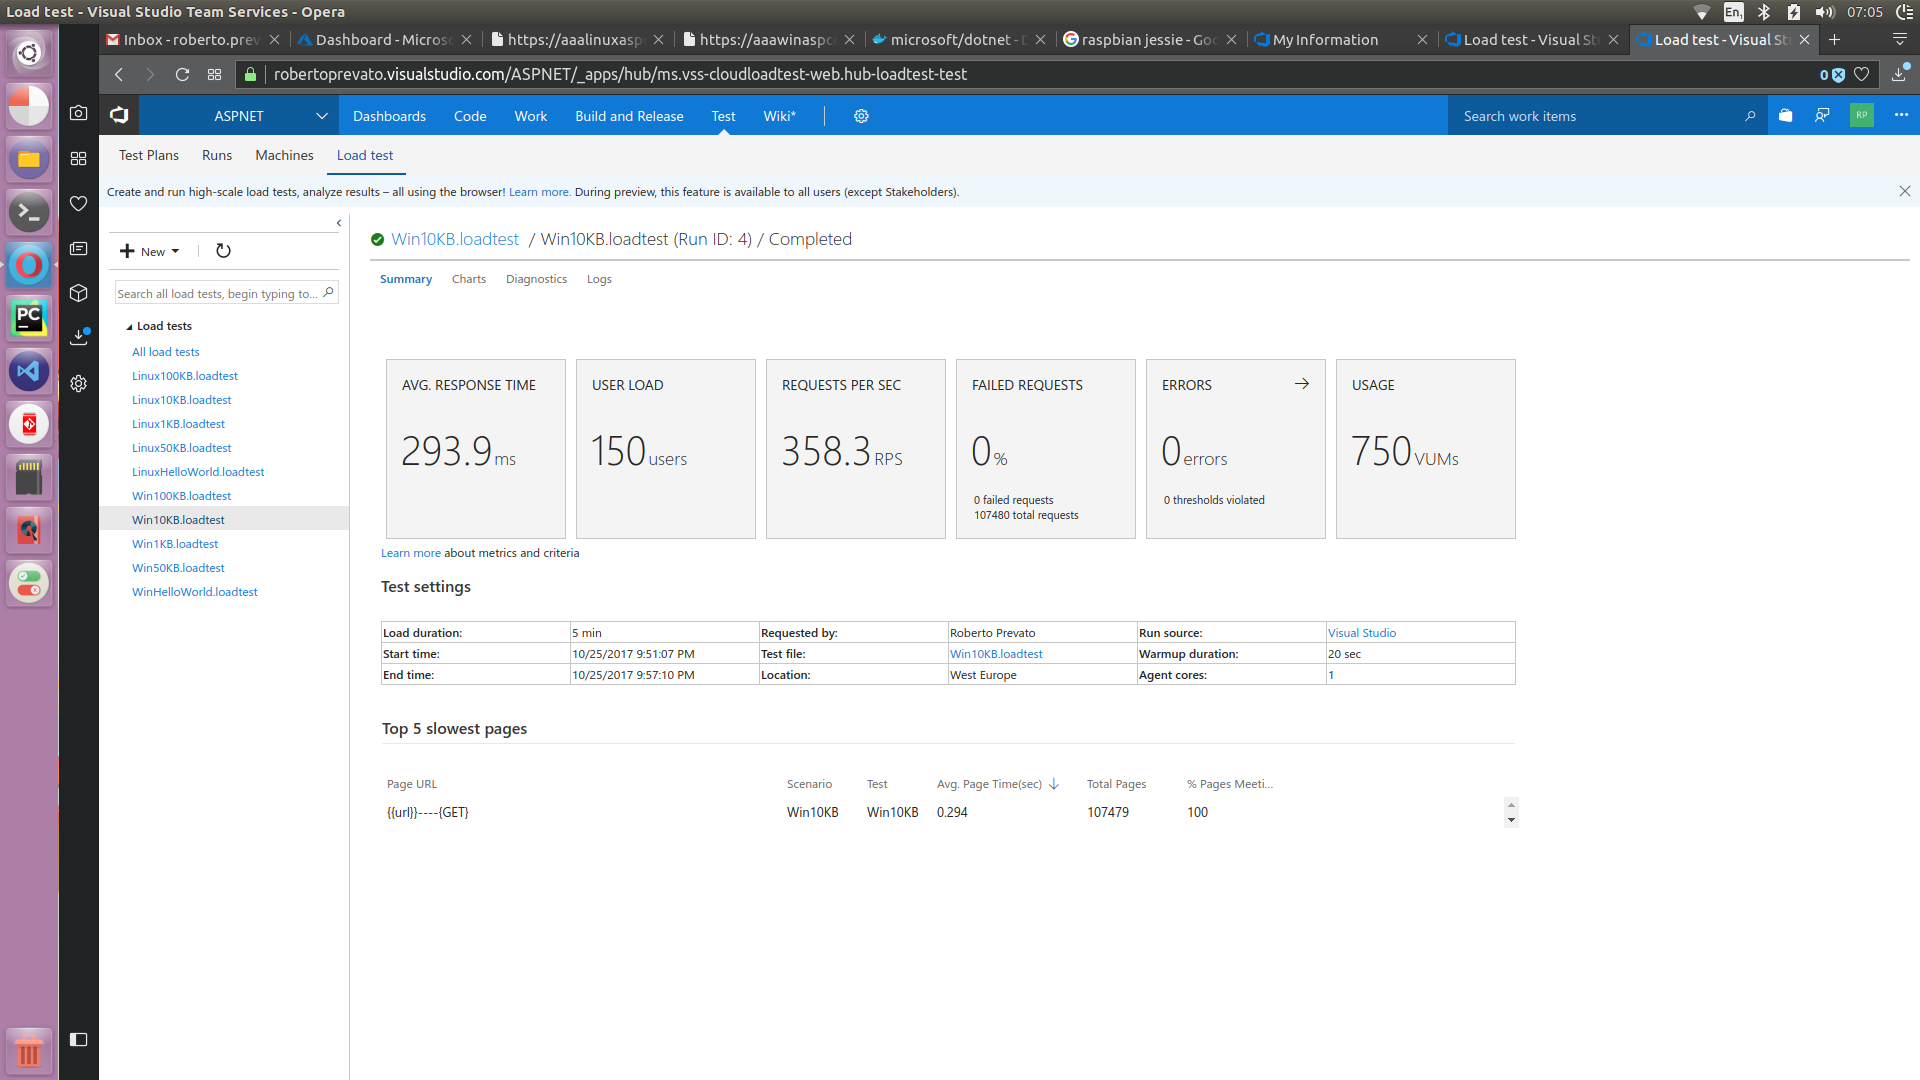 VSTS Cloud Test Summary